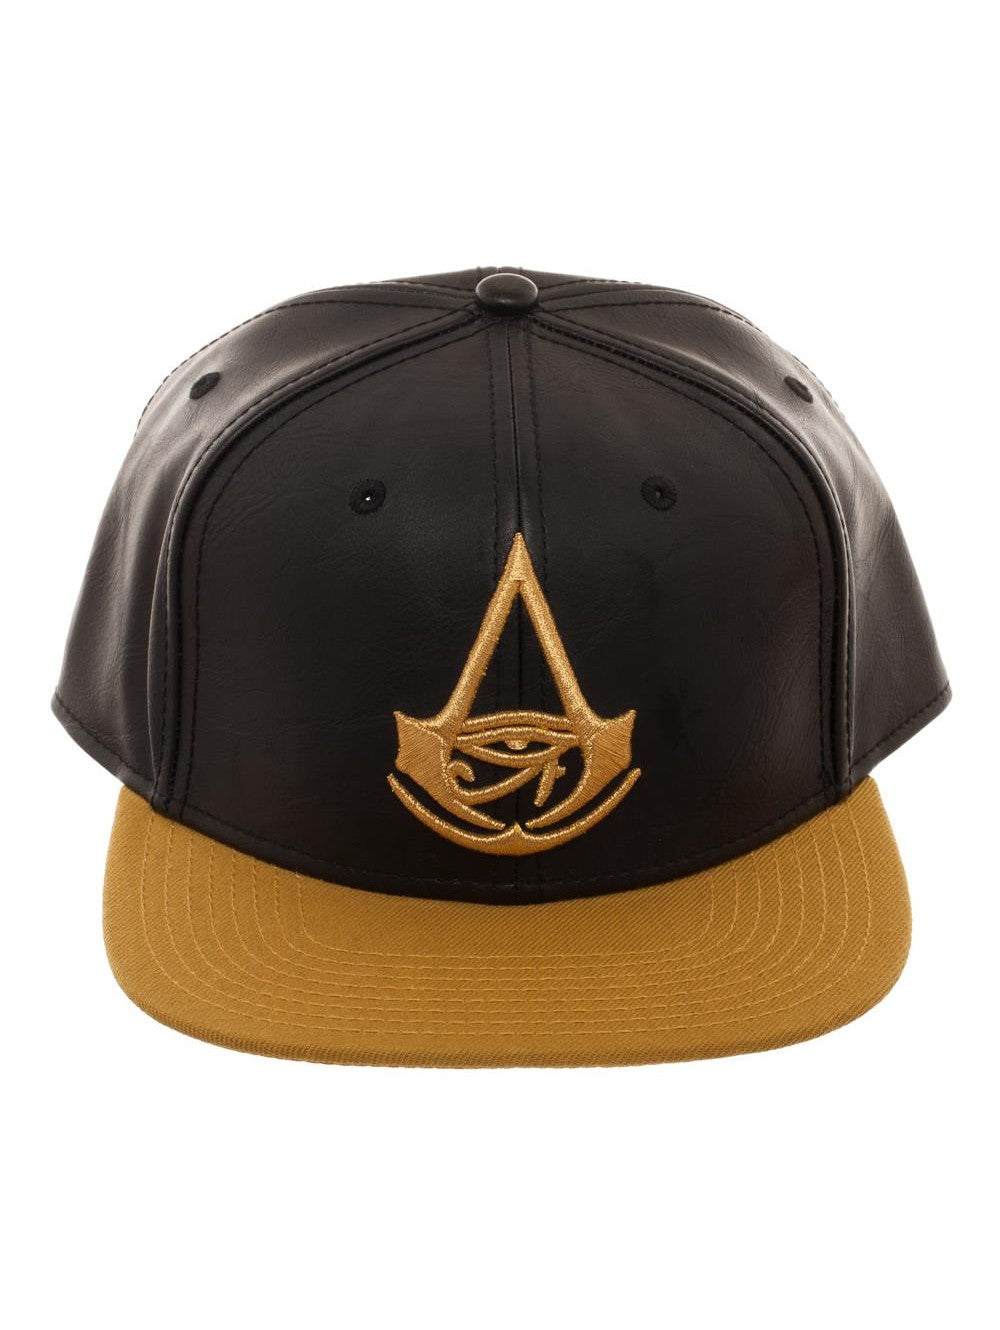 Bioworld Licensed Assassins Creed - Origins - Chrome Weld PU Black/Gold Snapback Hat